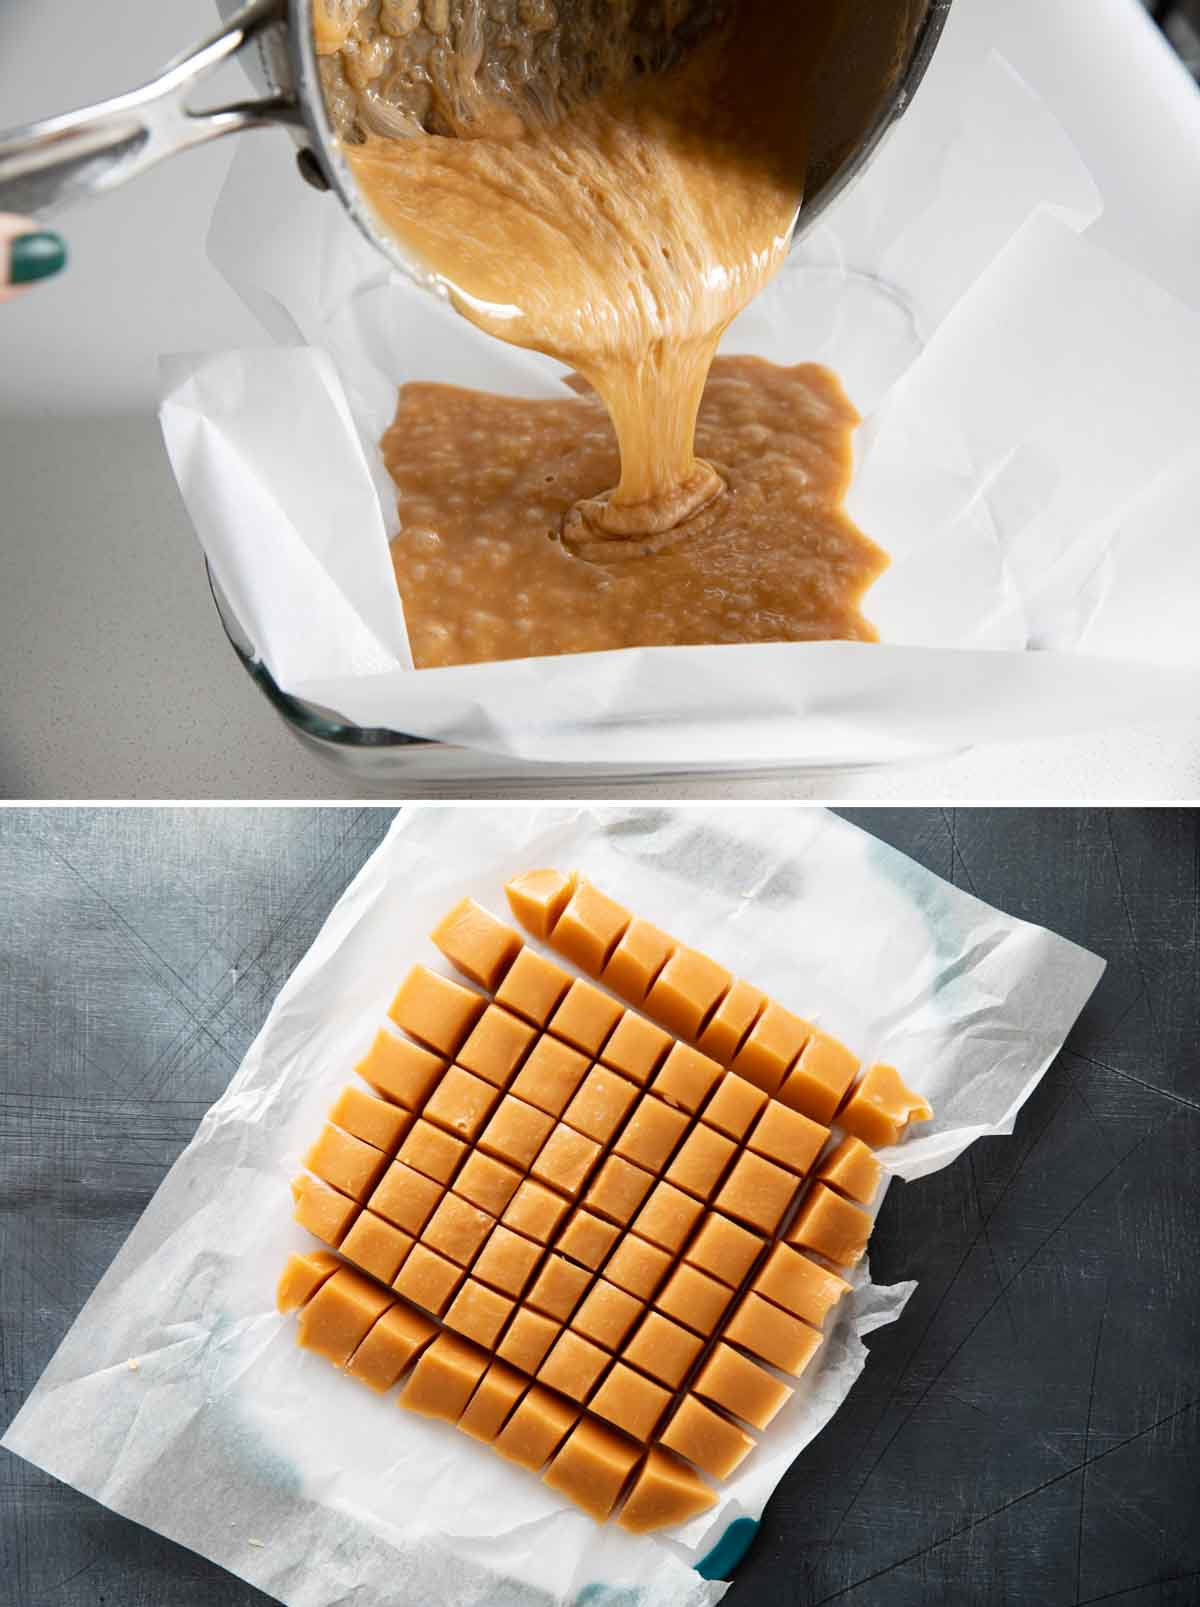 pouring hot caramel into a pan and cutting the caramels